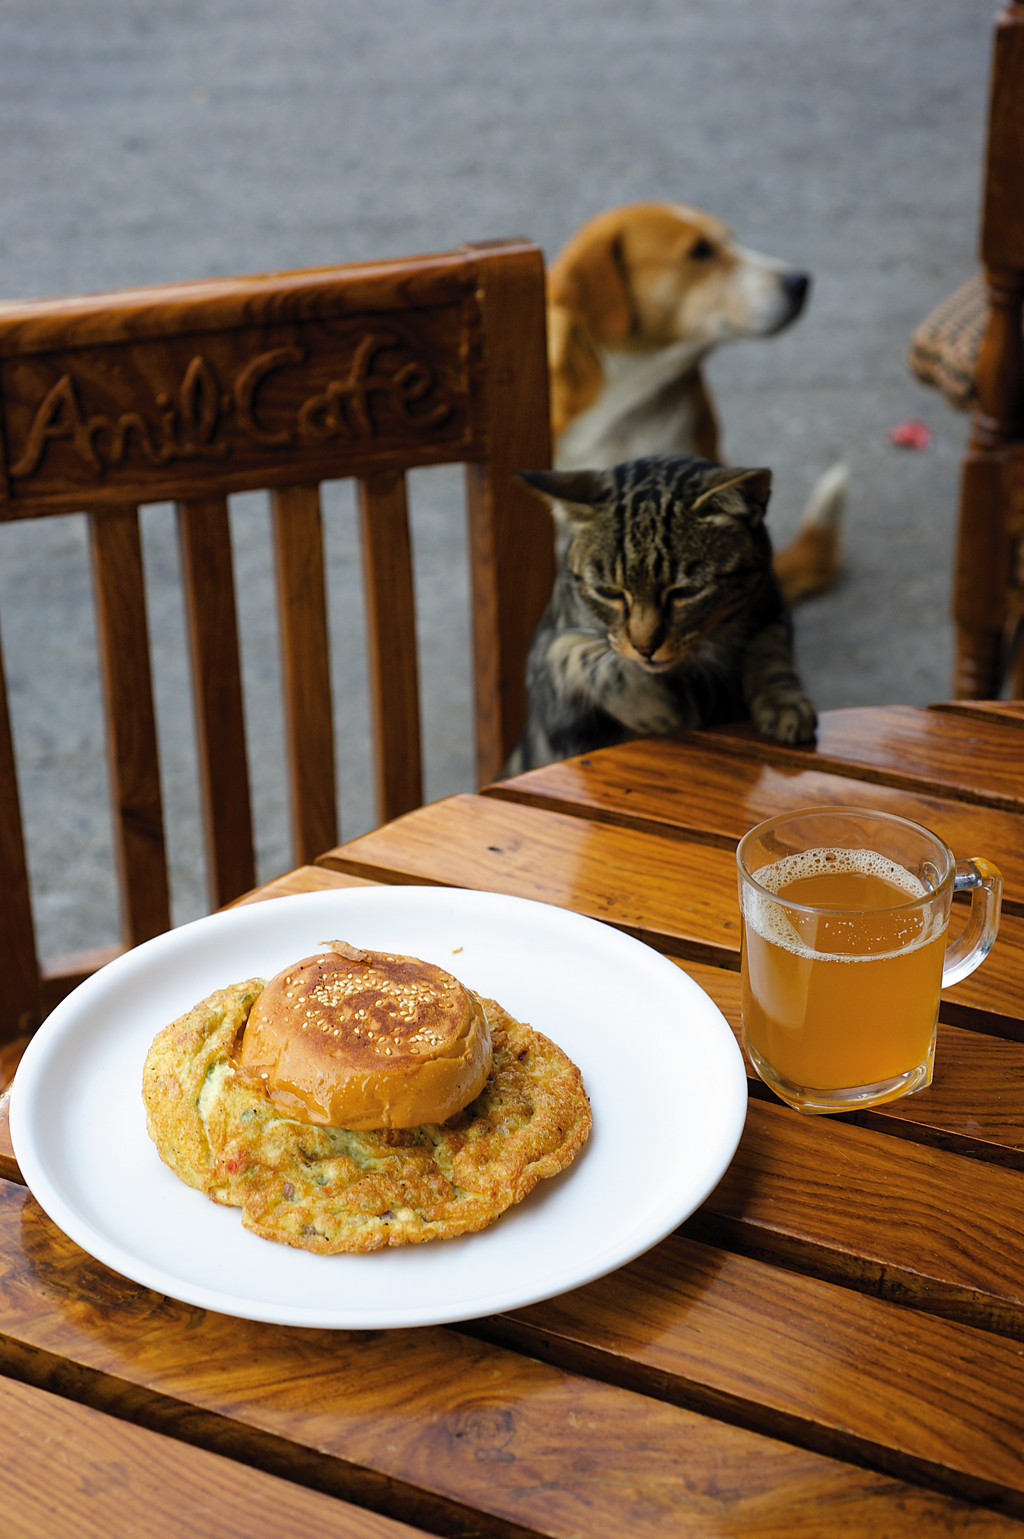 A cat admires the bun omelette at Anil's Cafe